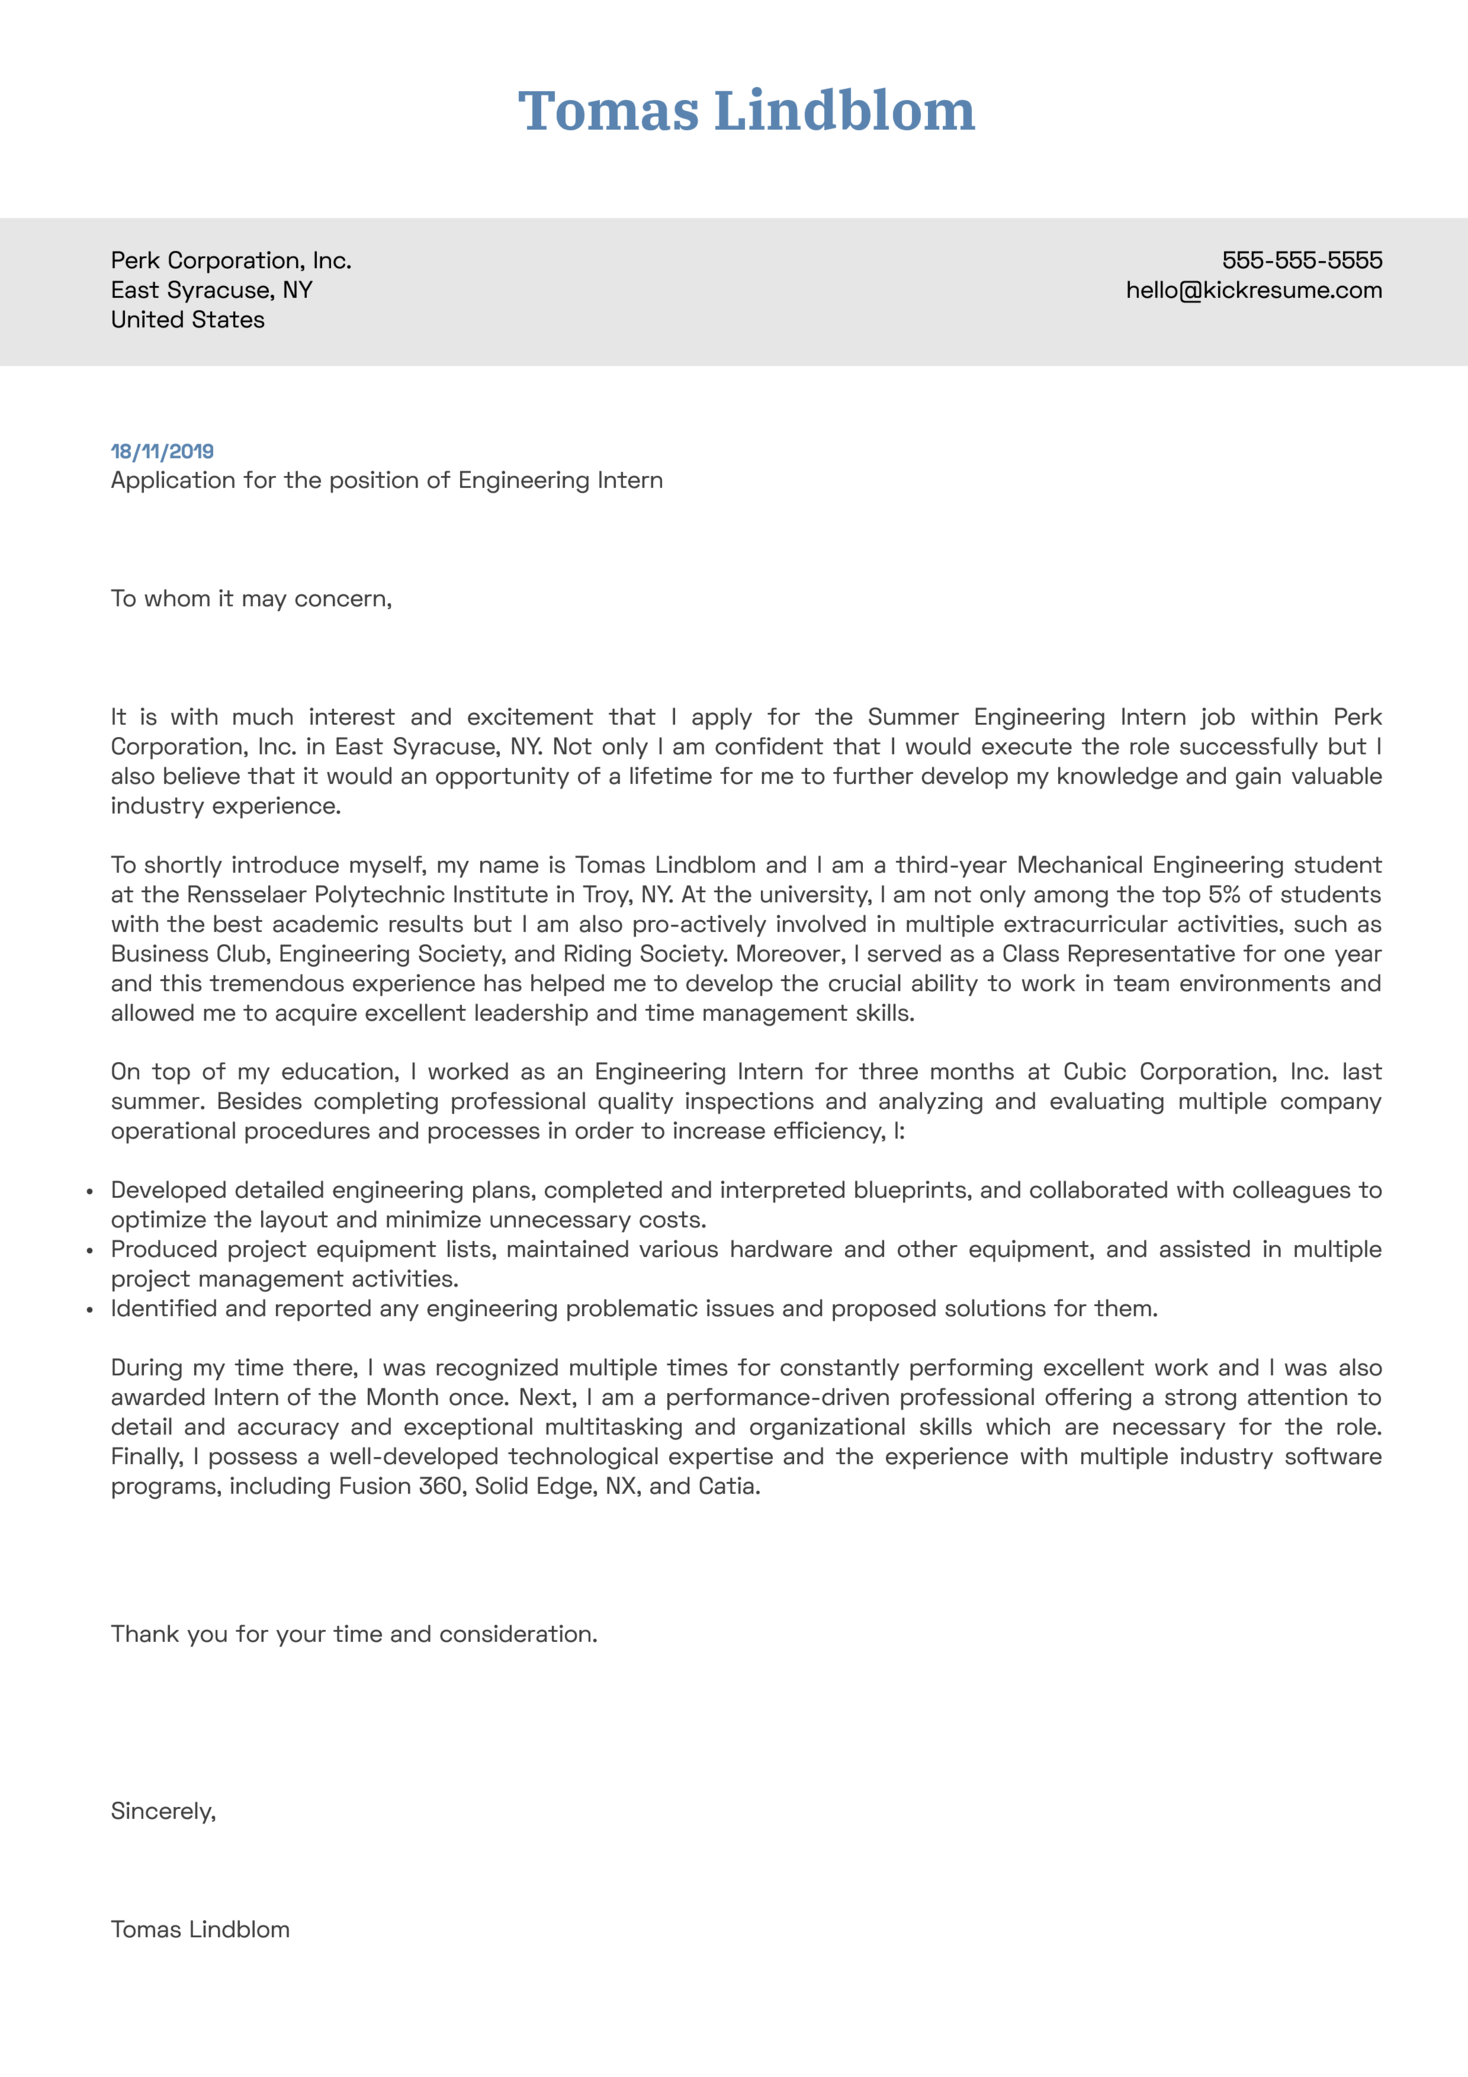 Engineering Intern Cover Letter Example